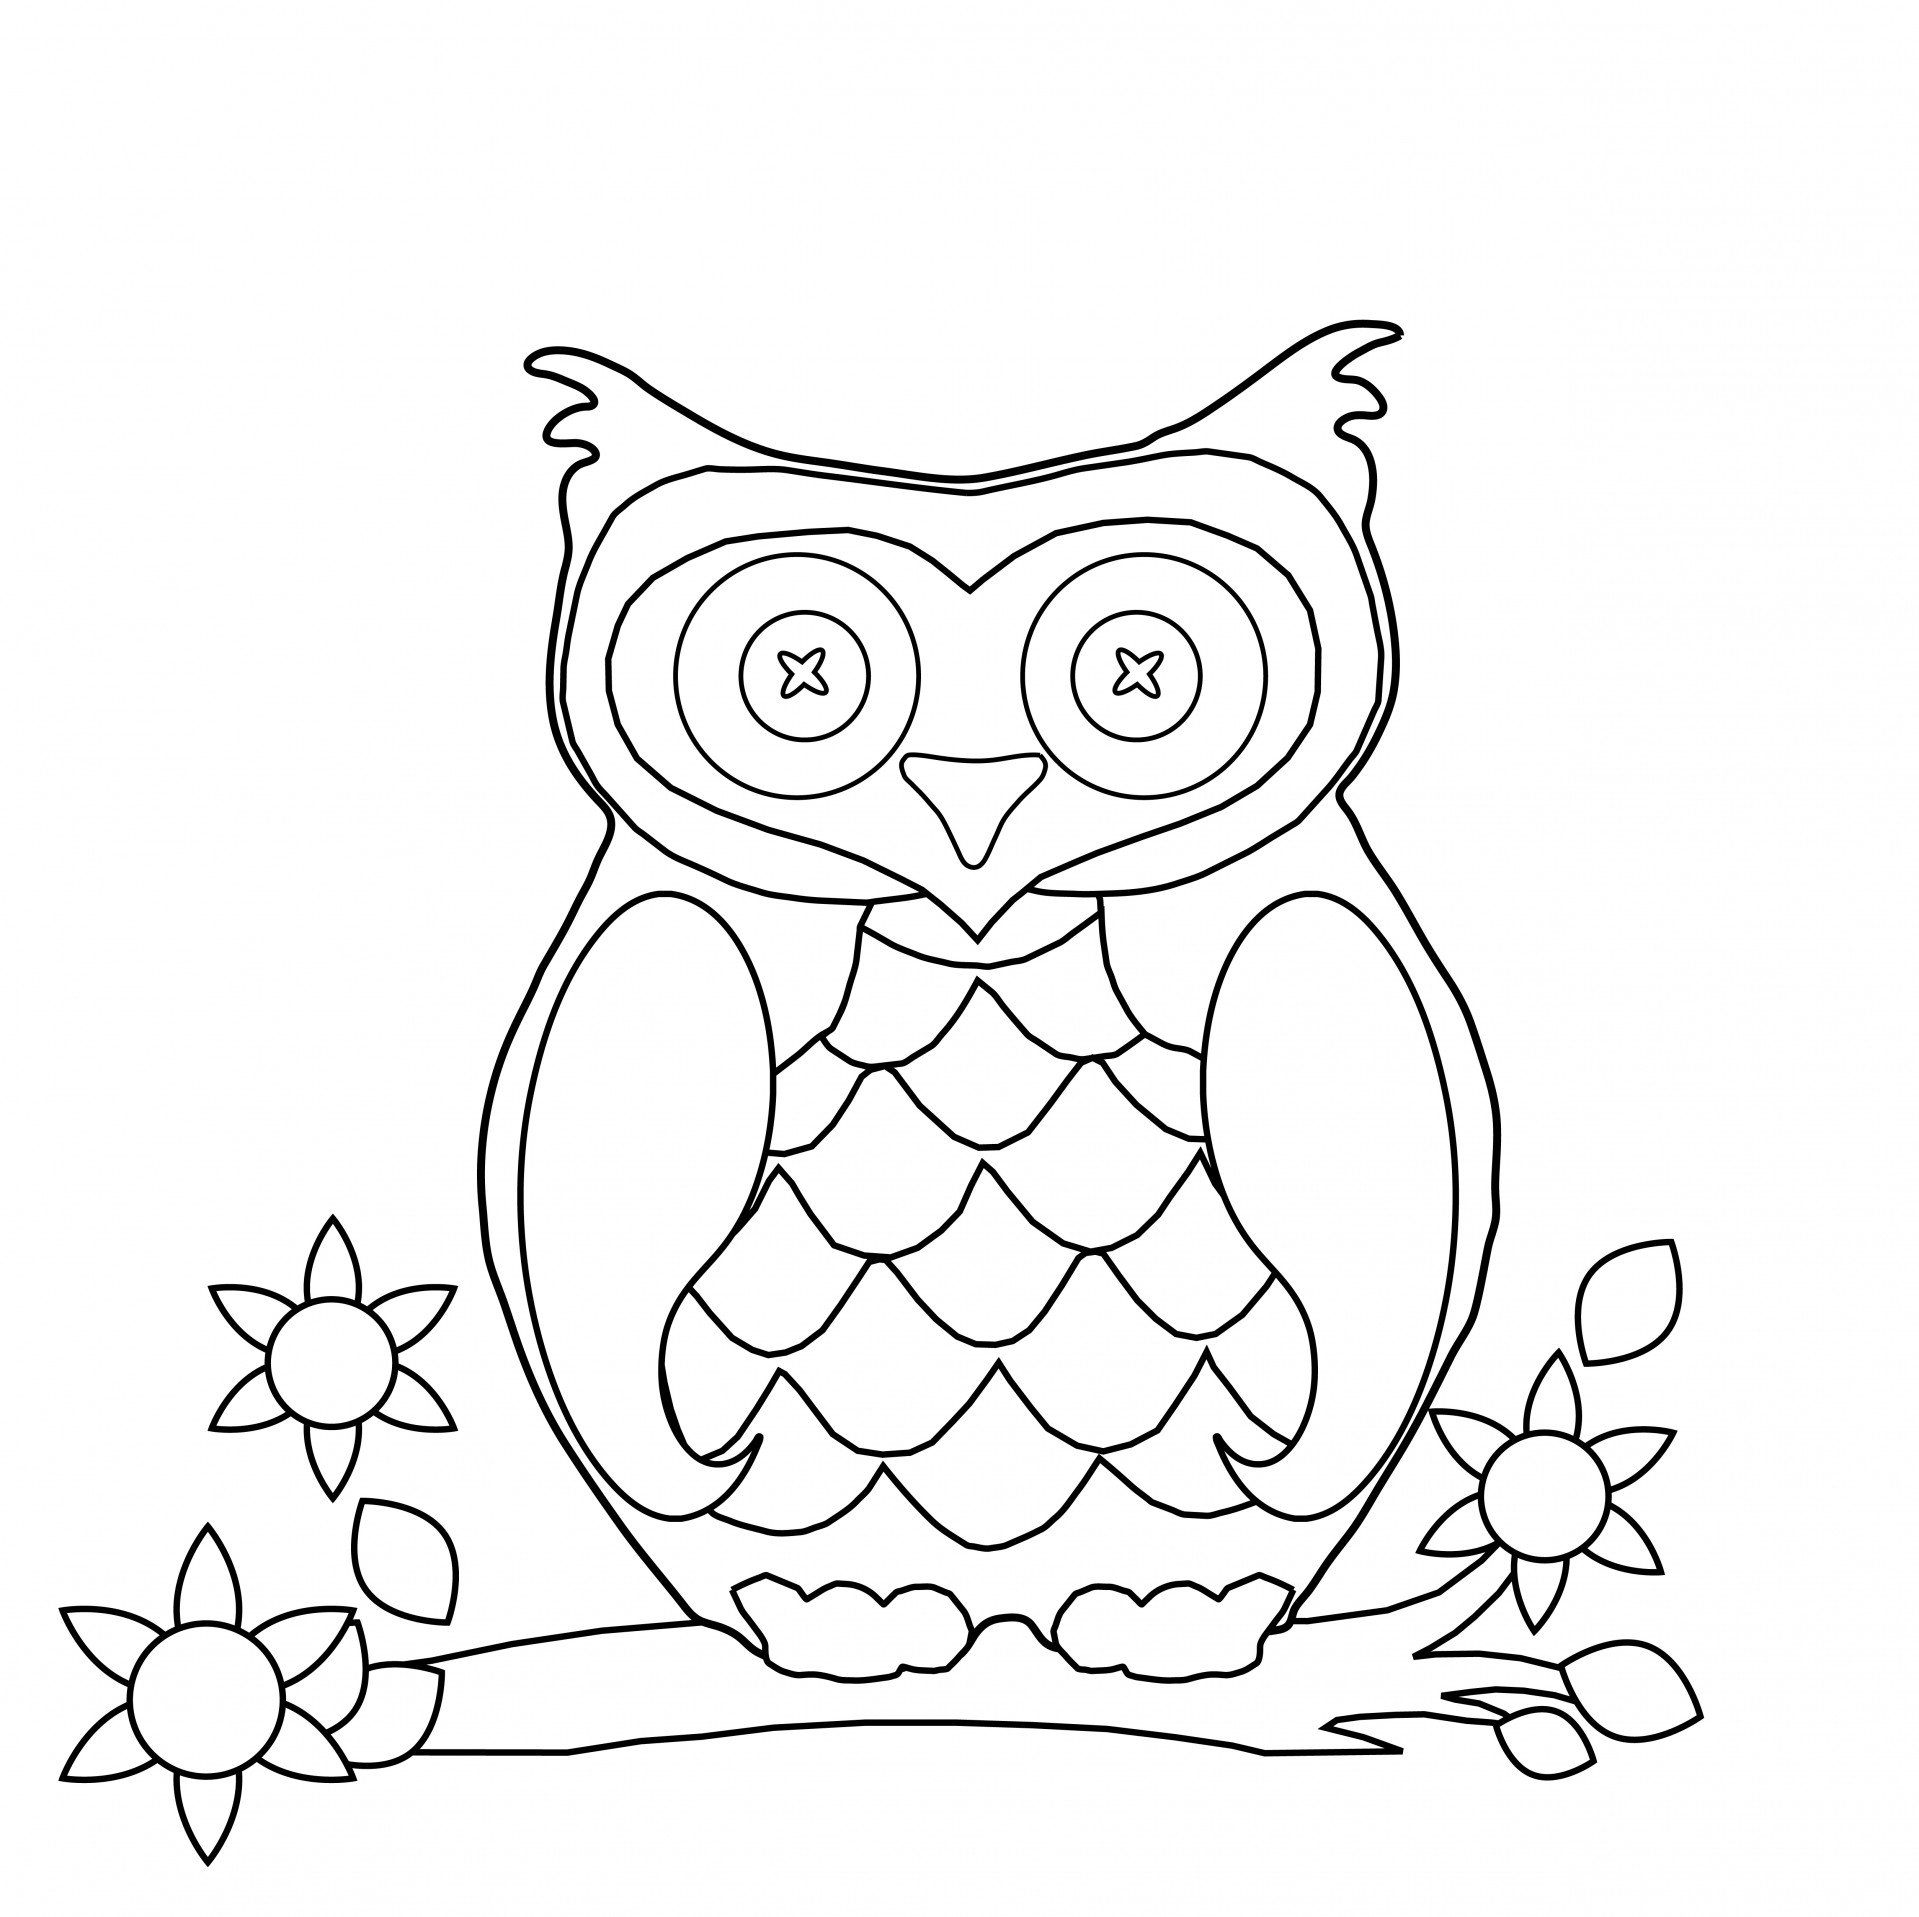 coloring prints for adults printable coloring pages for adults 15 free designs for prints adults coloring